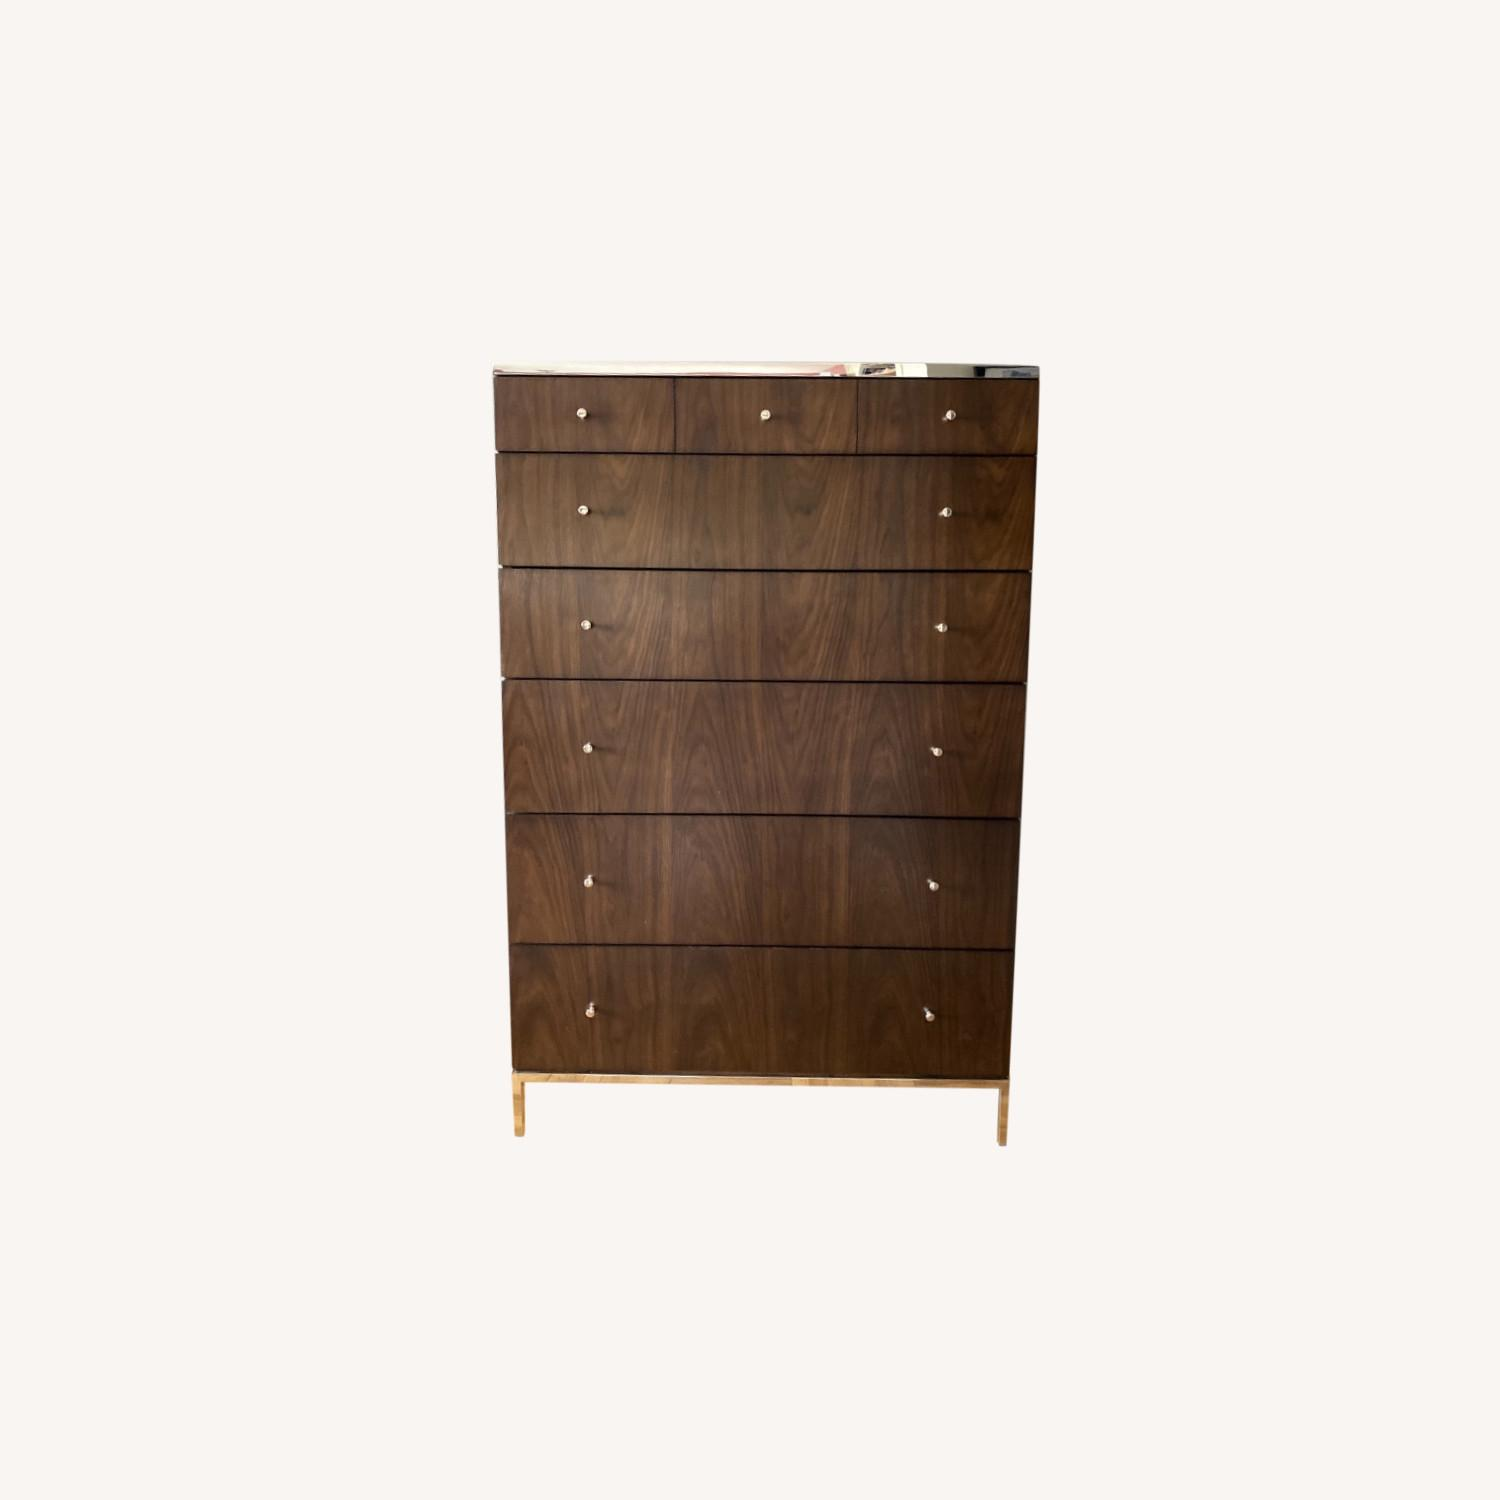 MGBW Manning Dresser with 6 Drawers - image-0